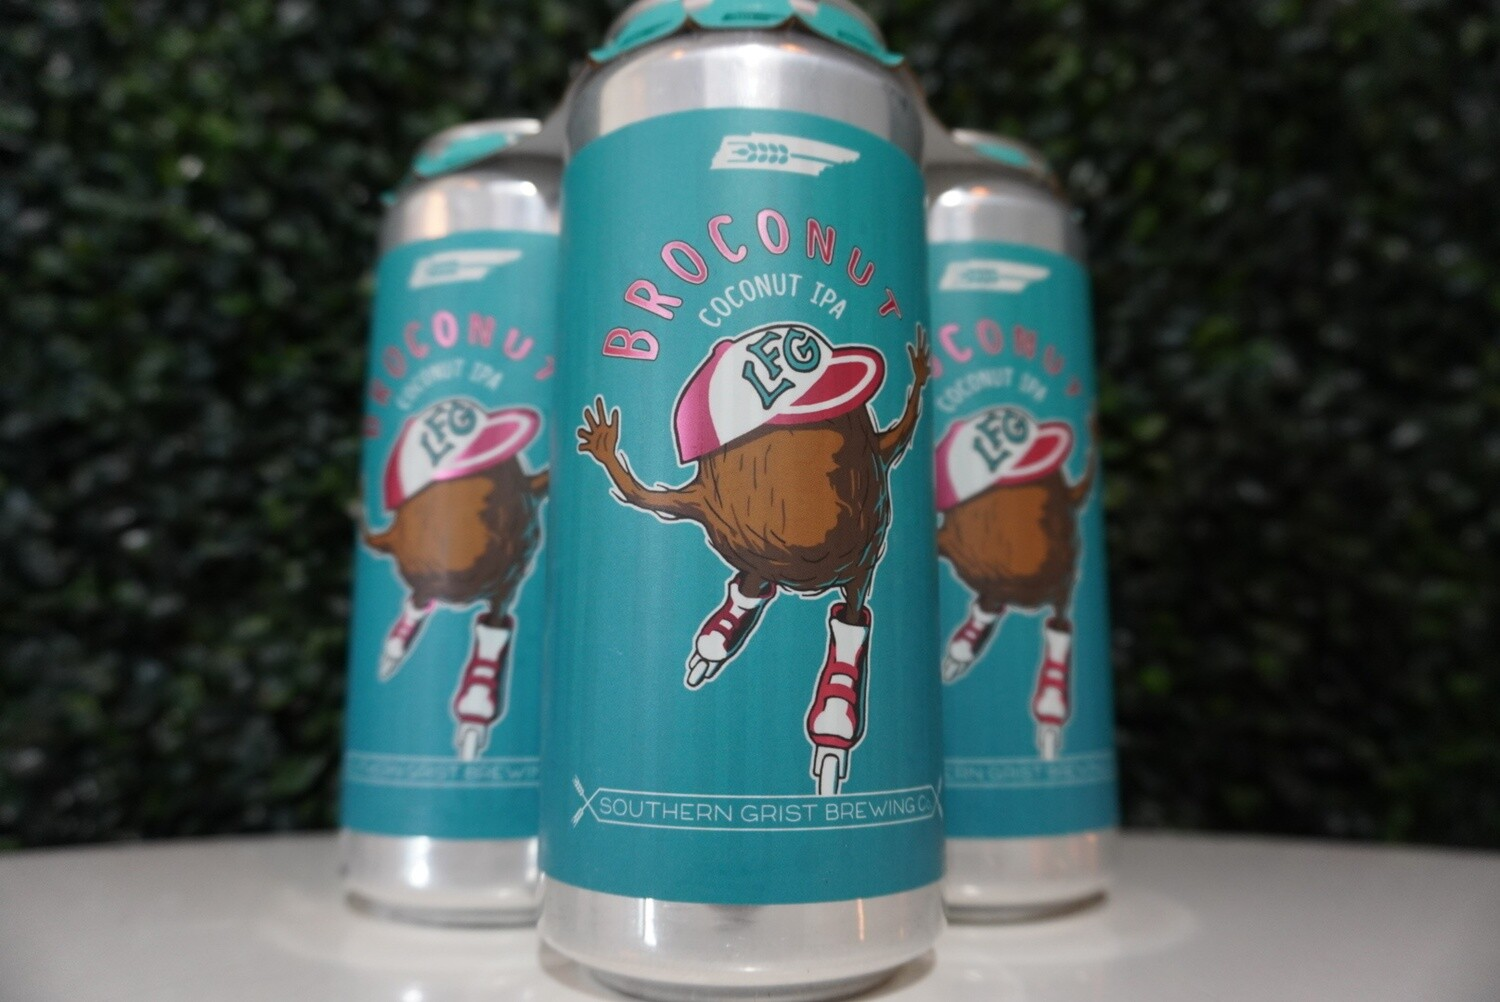 Southern Grist - BroCoNut - IPA - 6.2% ABV - 16oz Can